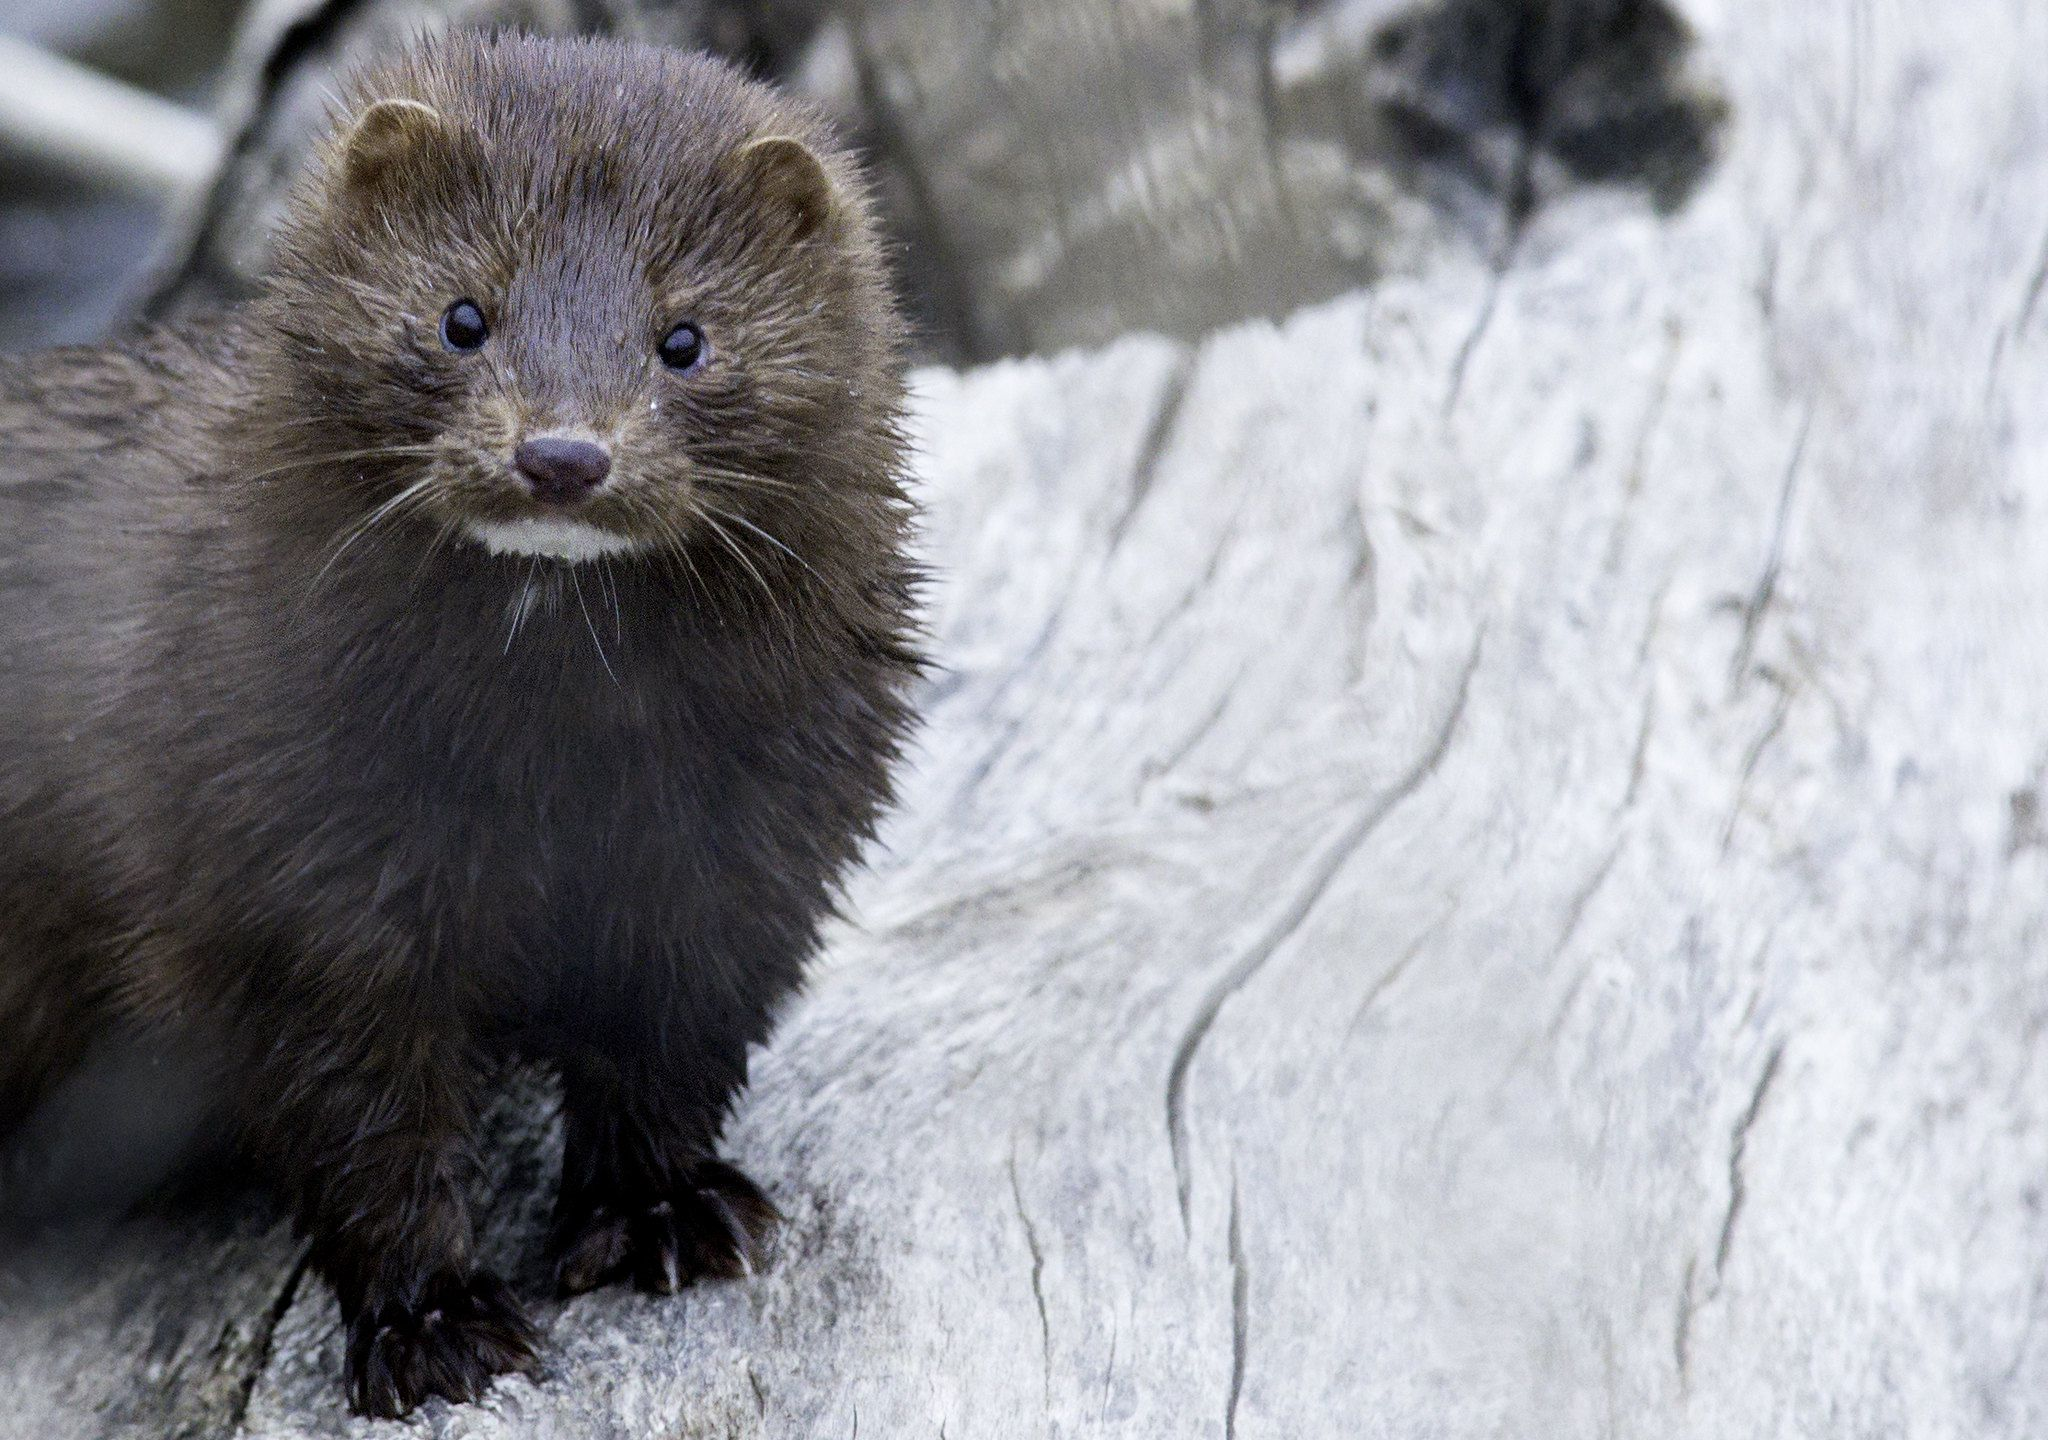 Health Officials Announce a Confirmed COVID-19 Outbreak at an Oregon Mink Farm